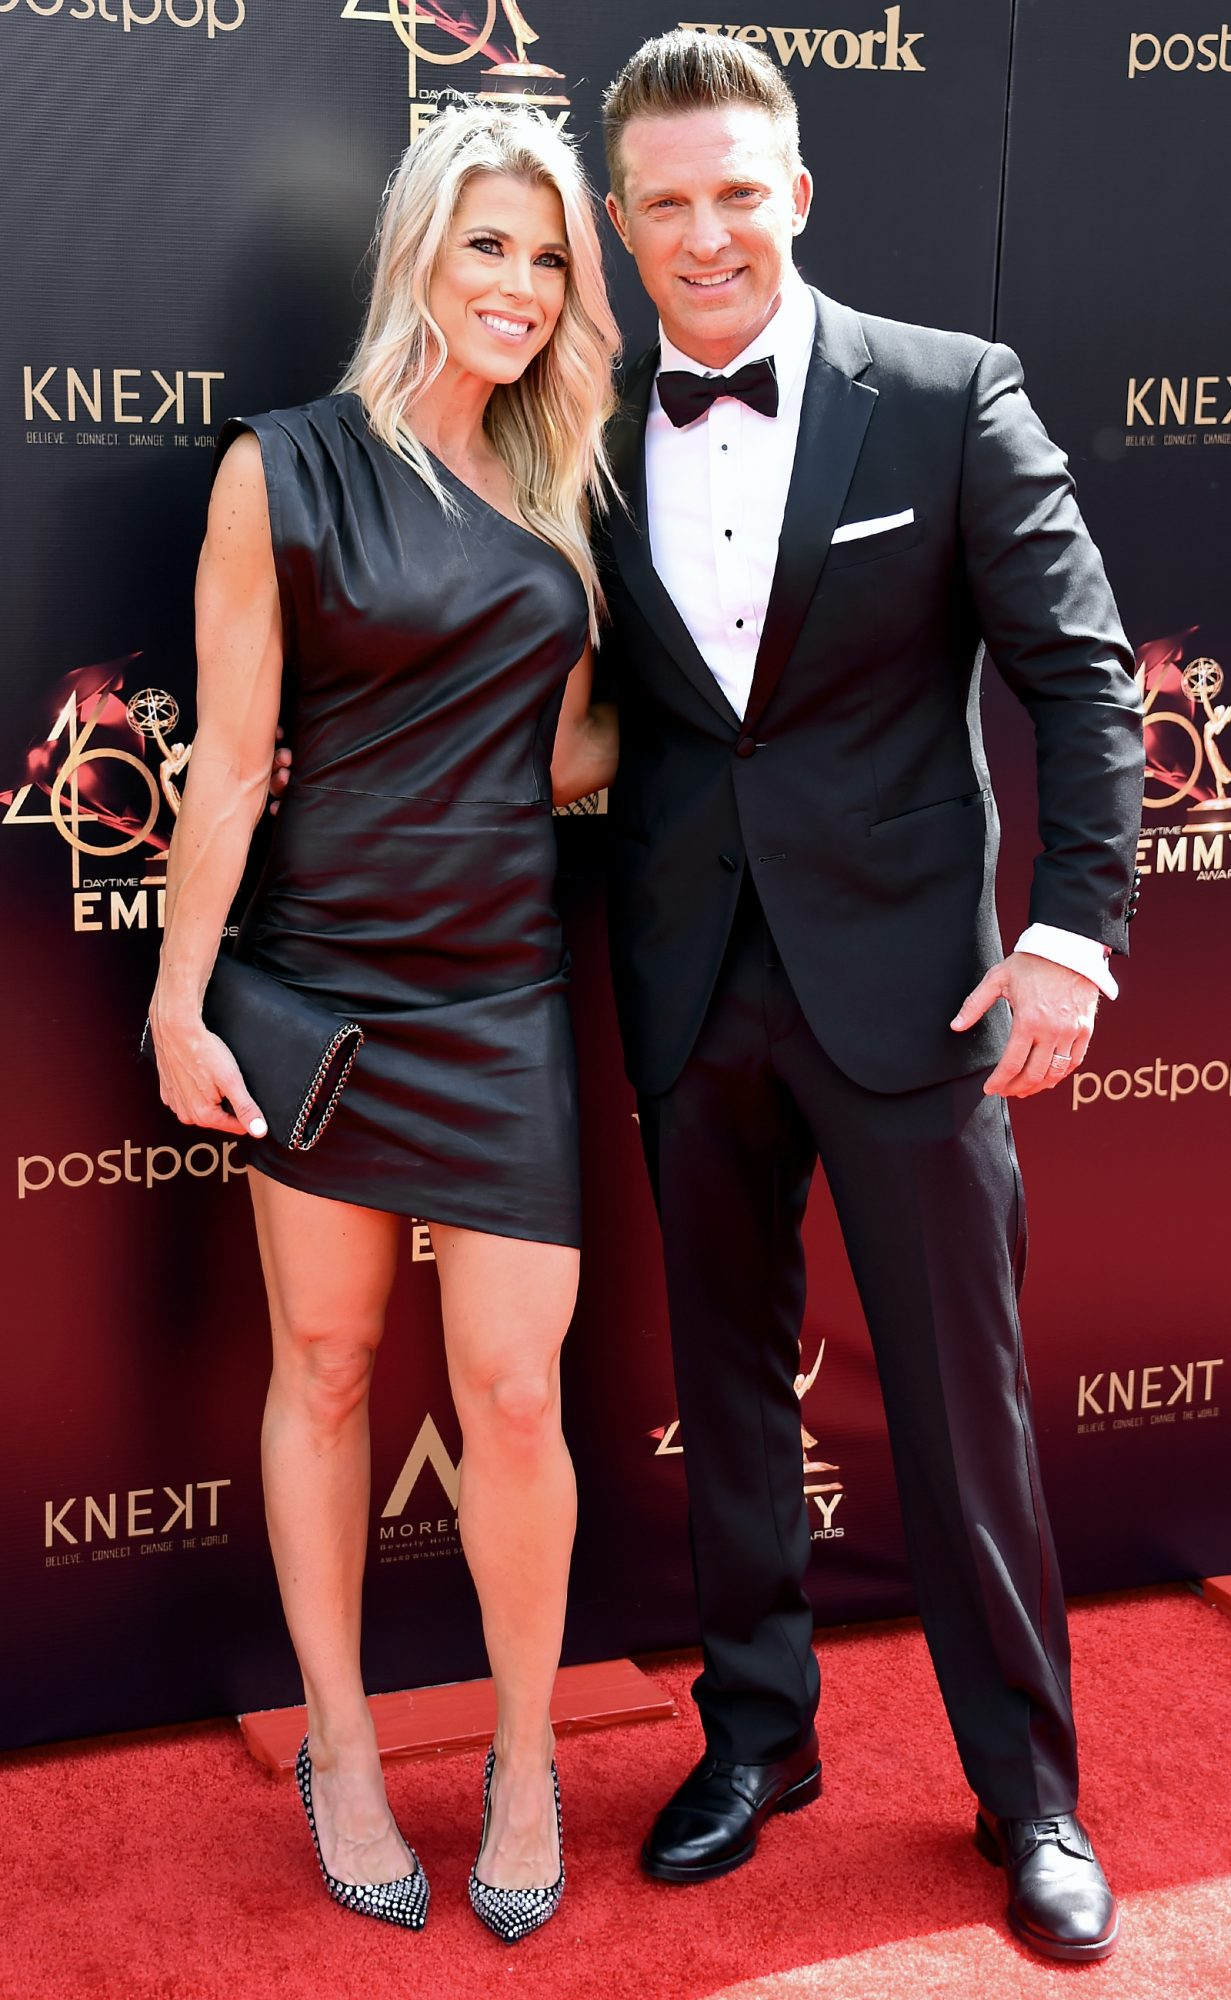 Sheree Gustin and Steve Burton attend the 46th annual Daytime Emmy Awards